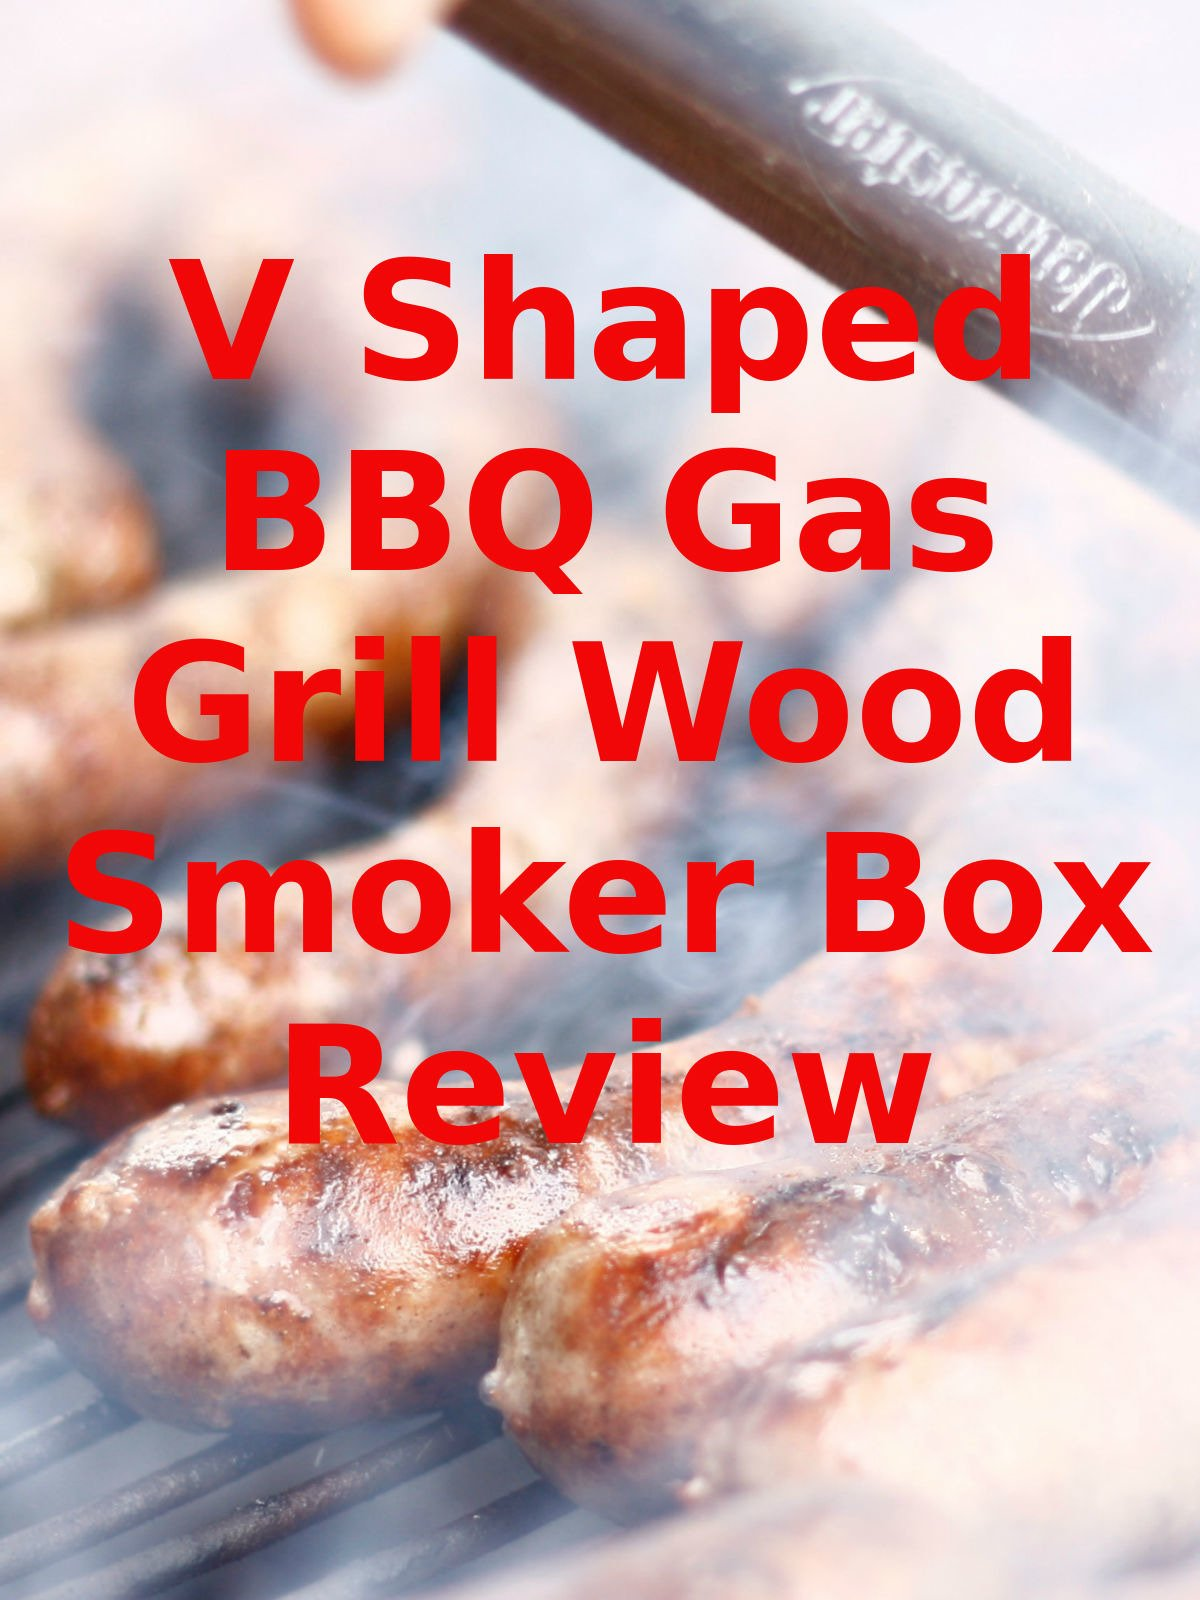 Review: V Shaped BBQ Gas Grill Wood Smoker Box Review on Amazon Prime Video UK